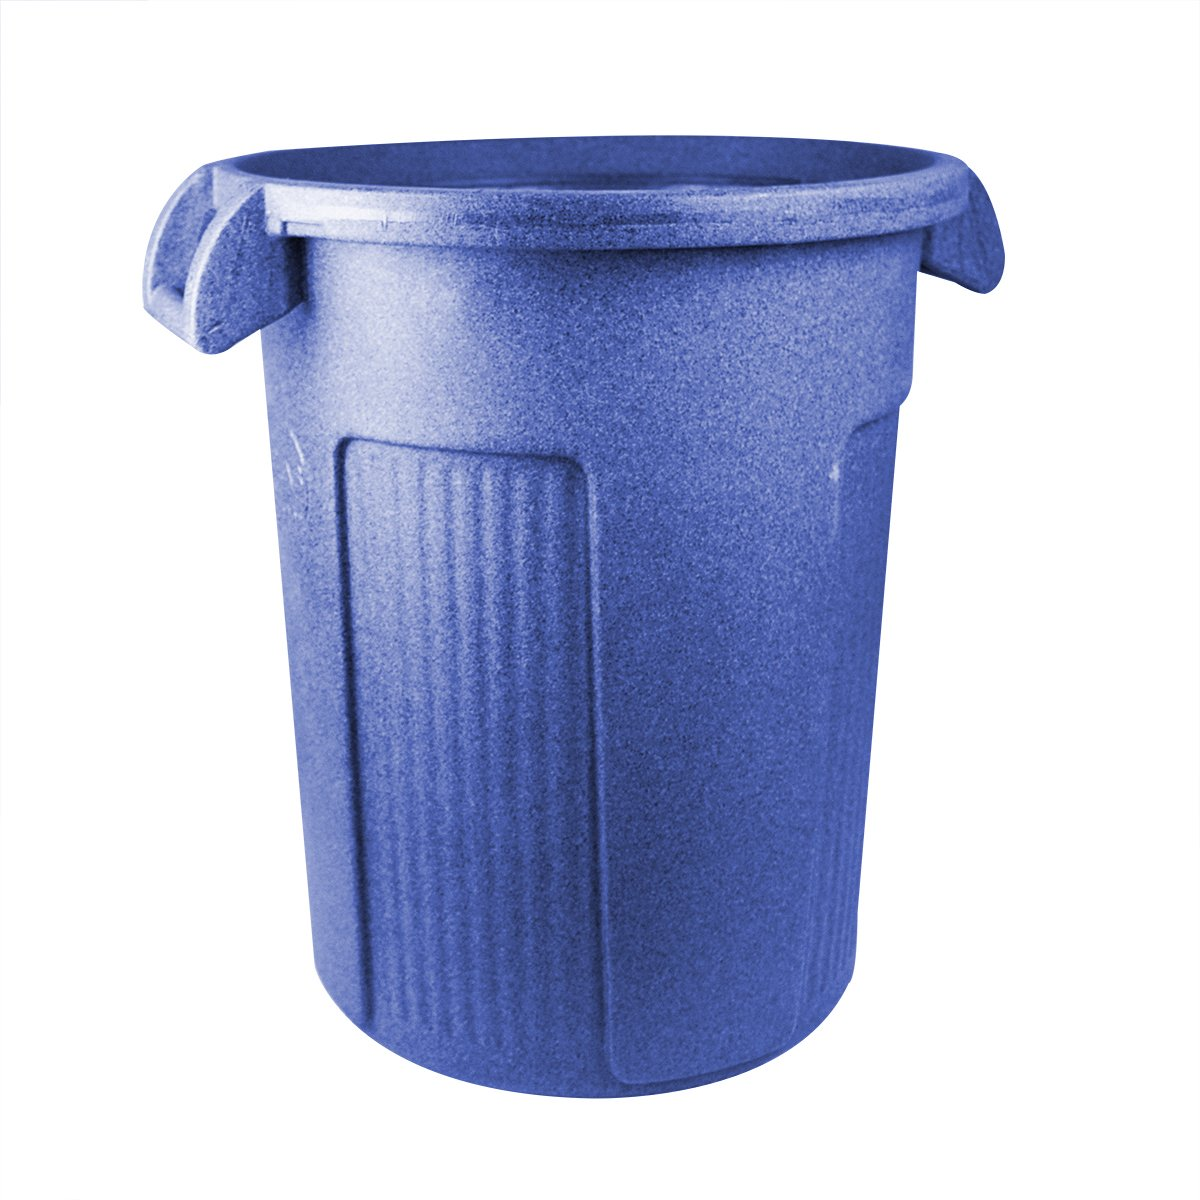 UltraSource Commercial Atlas Waste Container, 32 gal, Blue